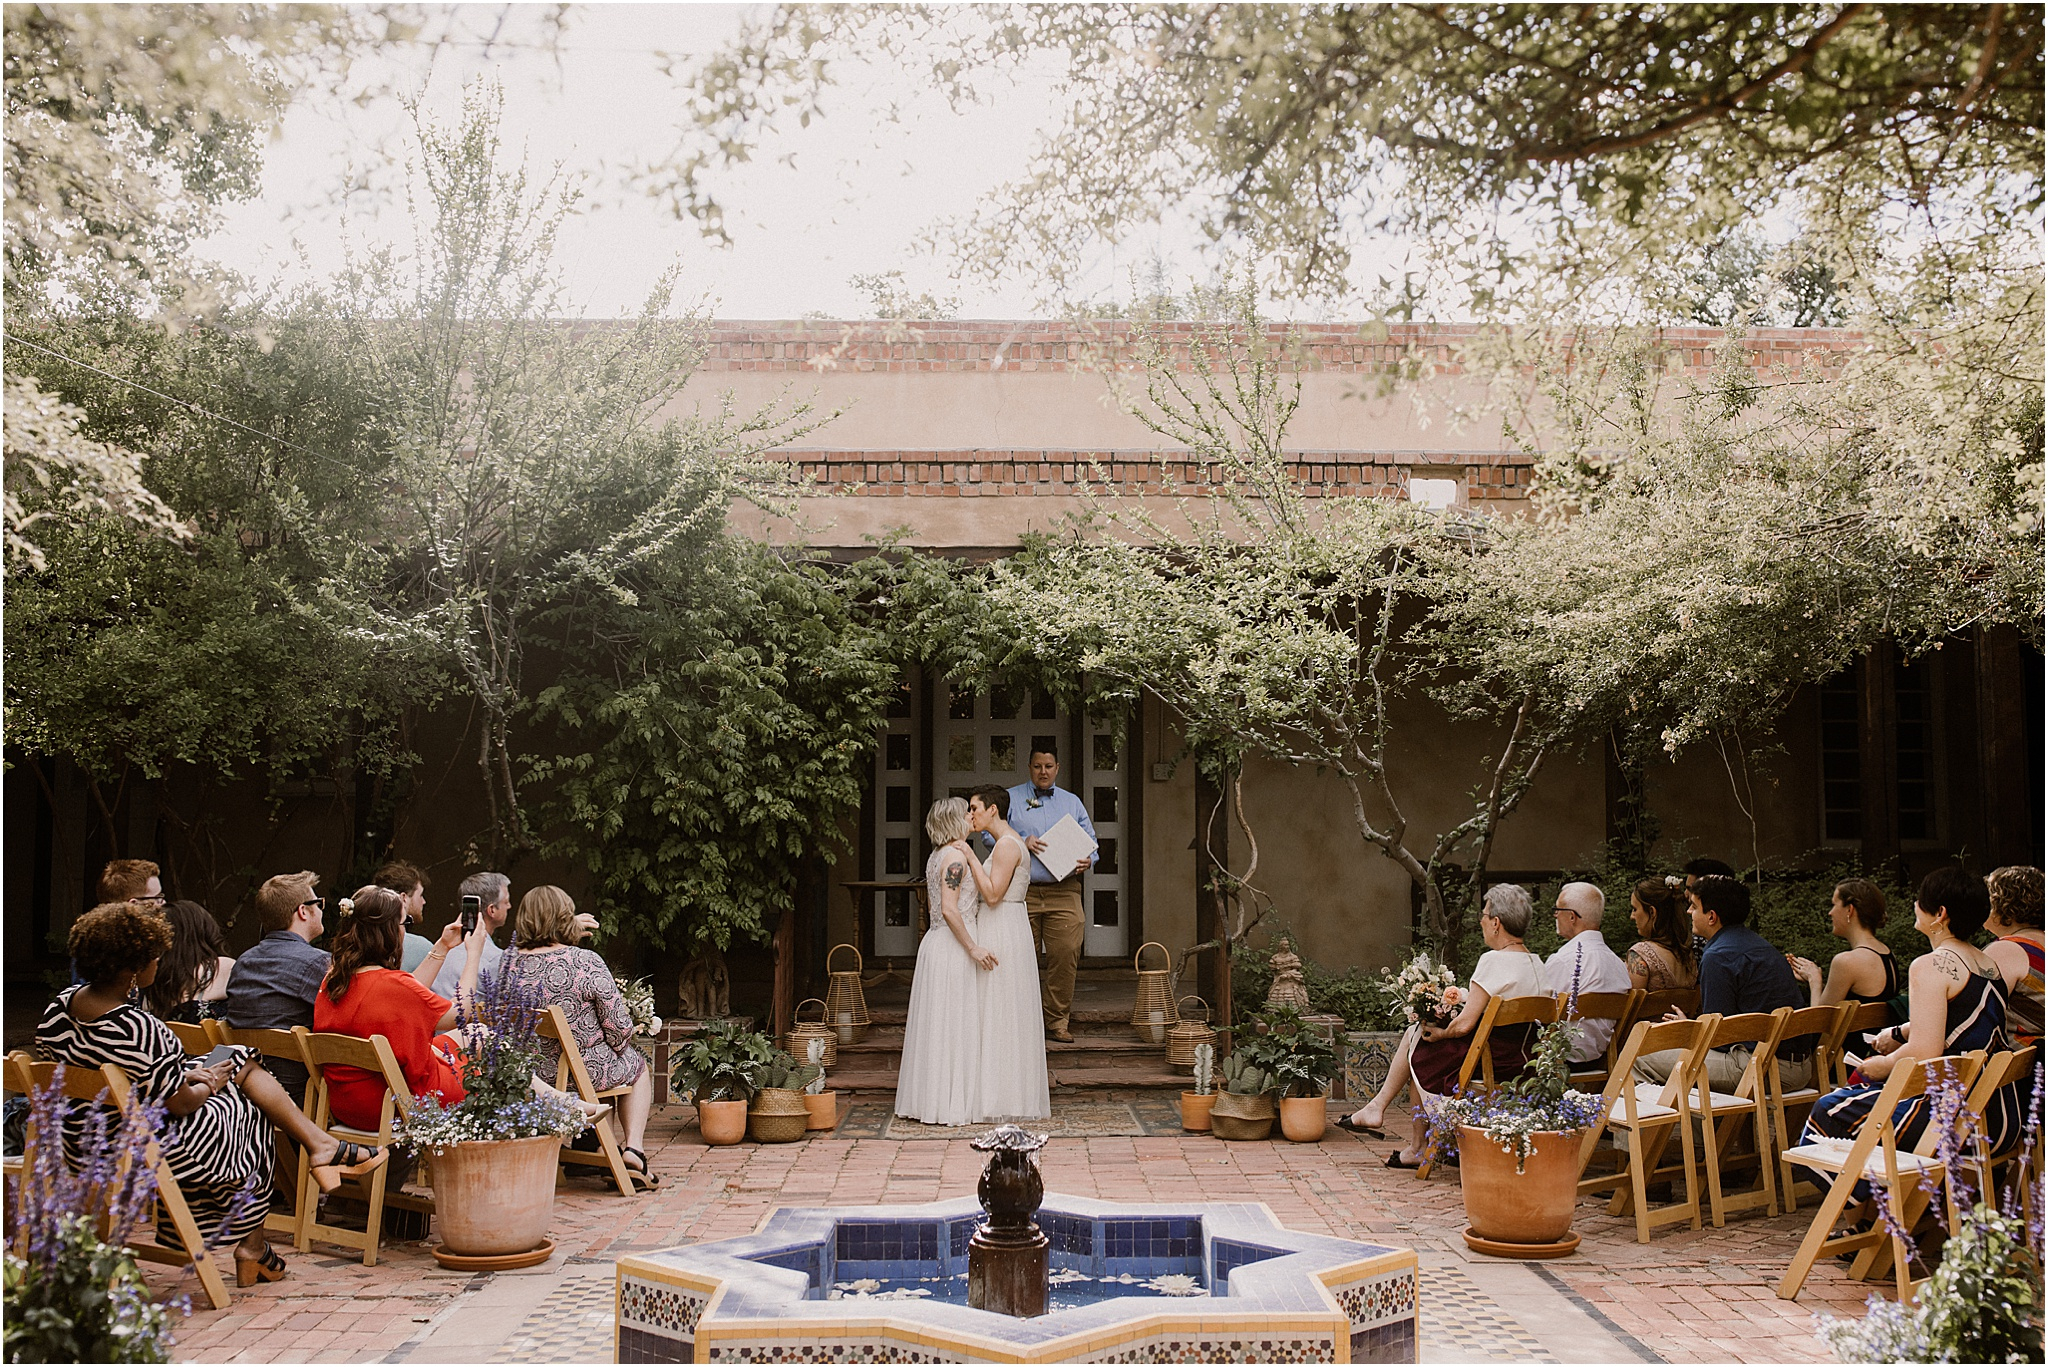 Kelly_Lisa_Los Poblanos_Wedding_Blue Rose Photography101